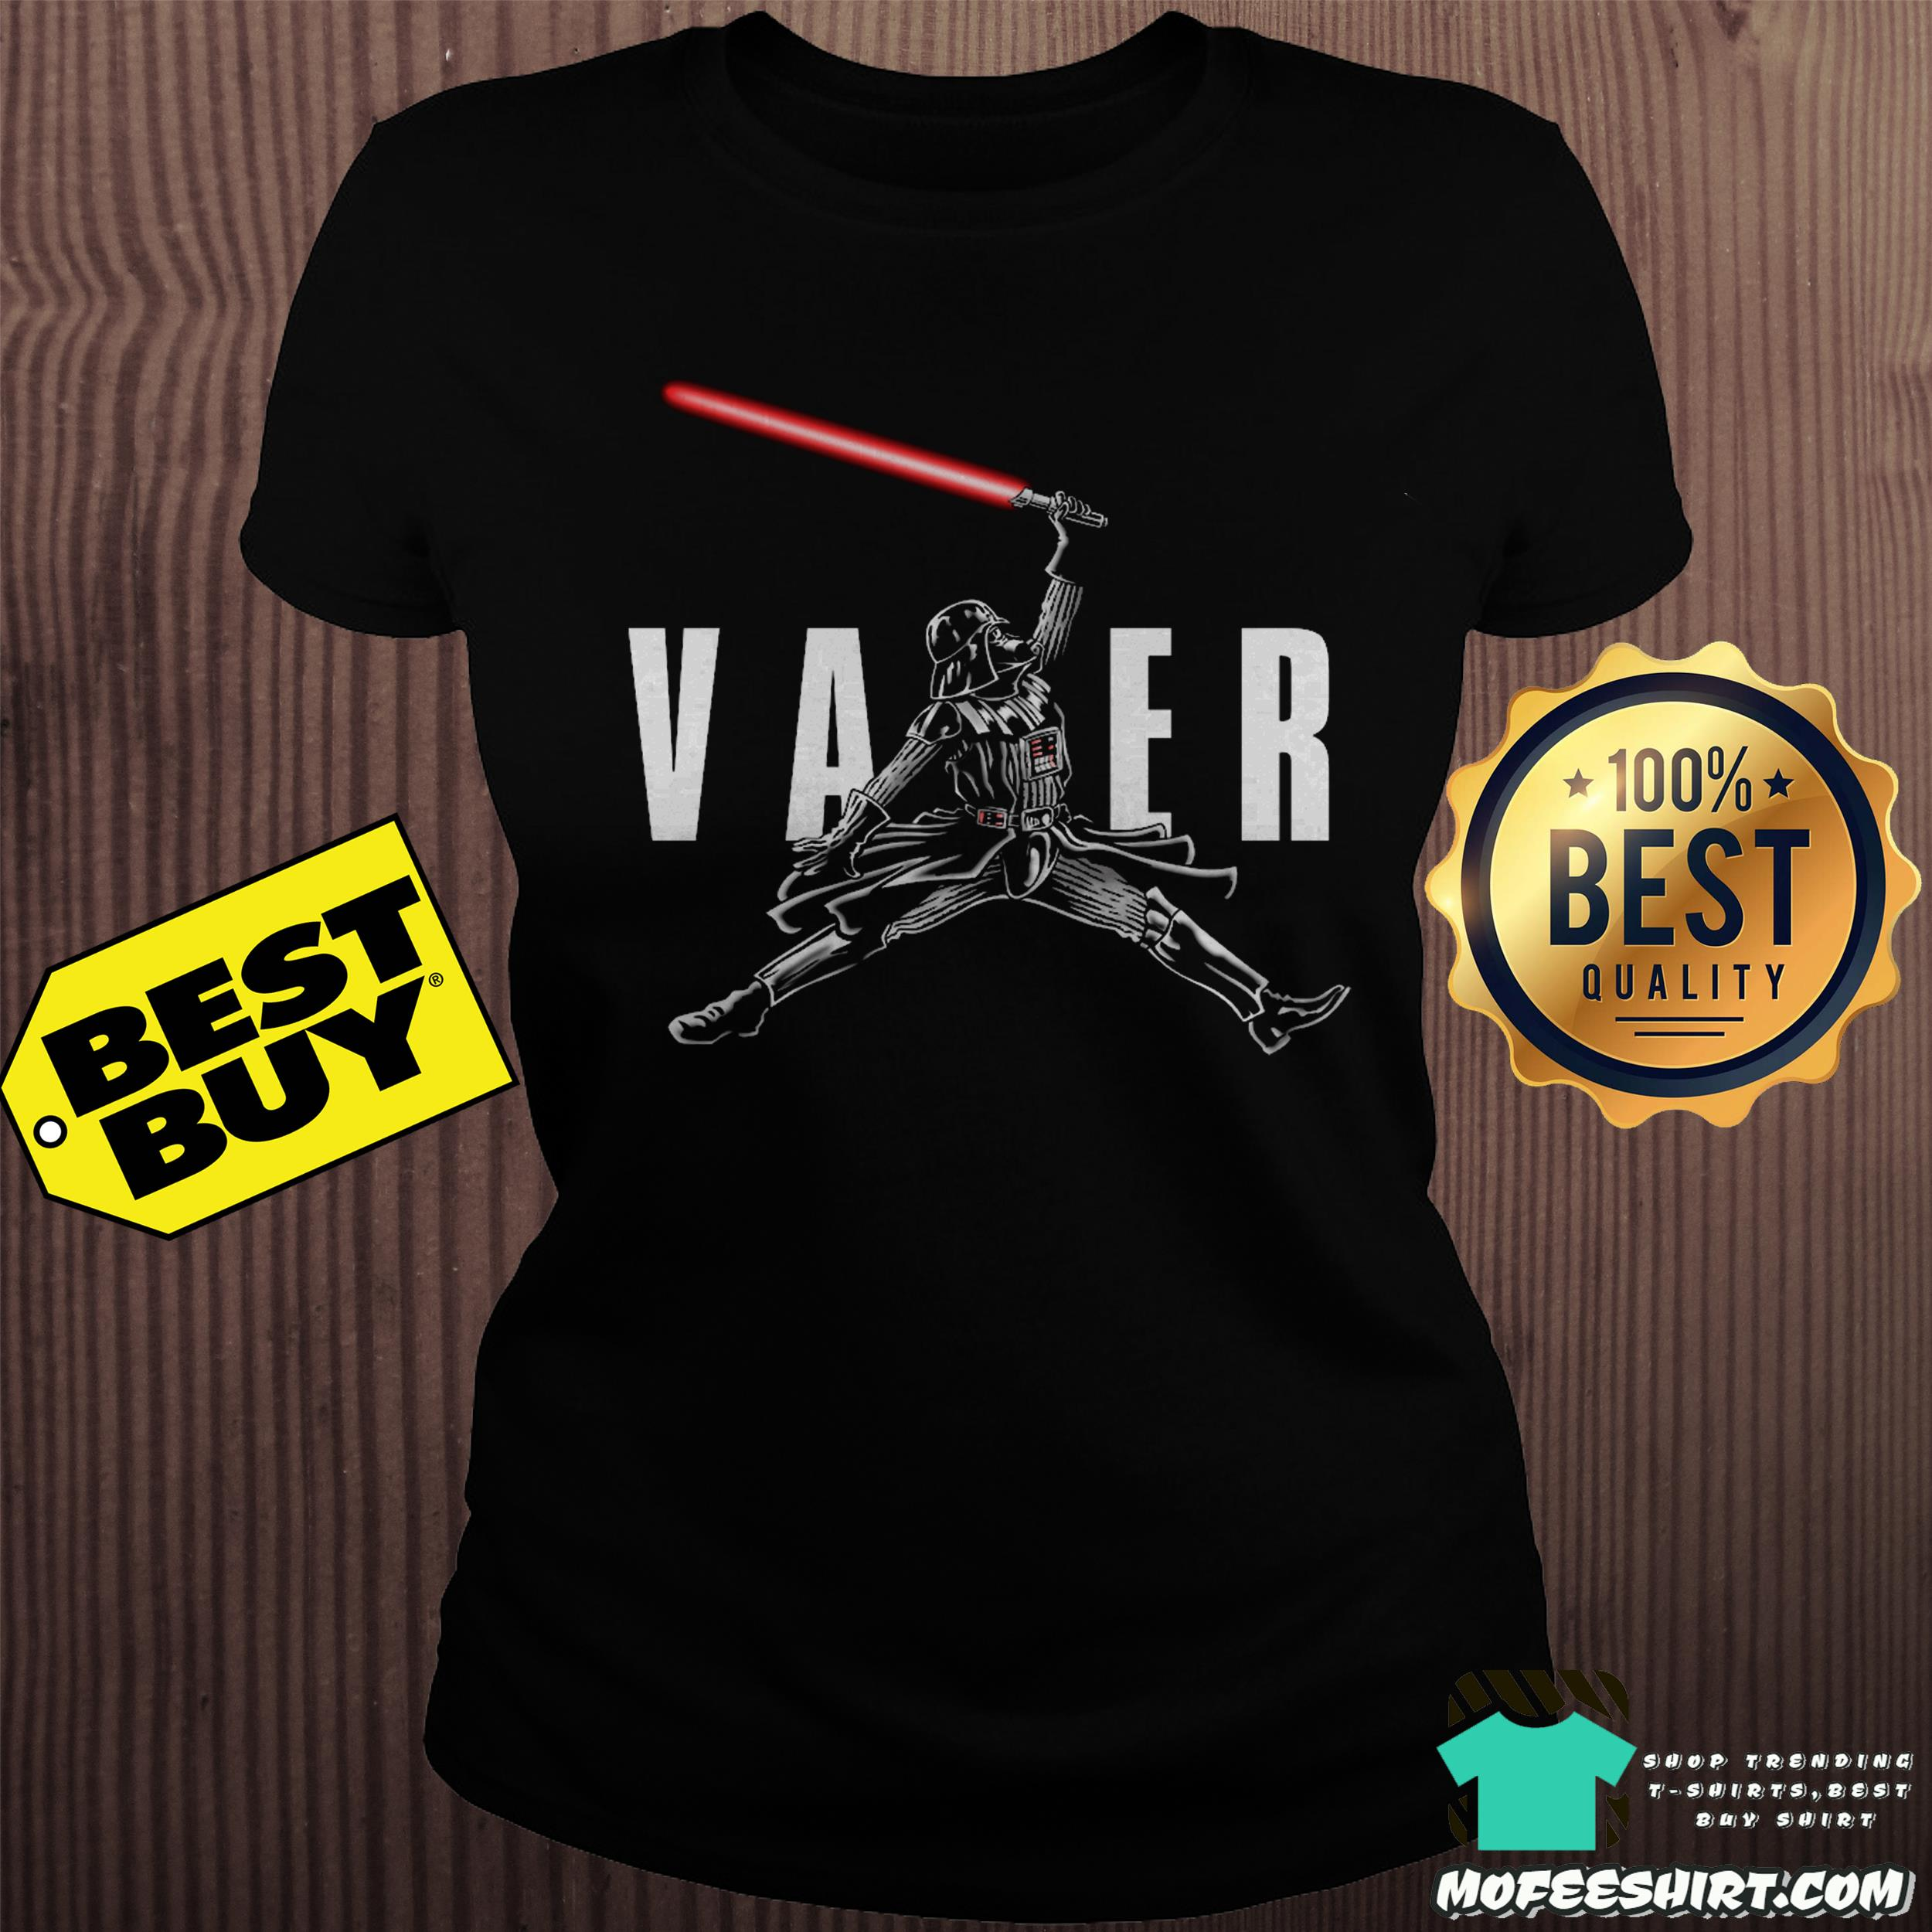 "air vader darth vader star war ladies tee - ""Air Vader"" - Darth Vader Star War shirt"